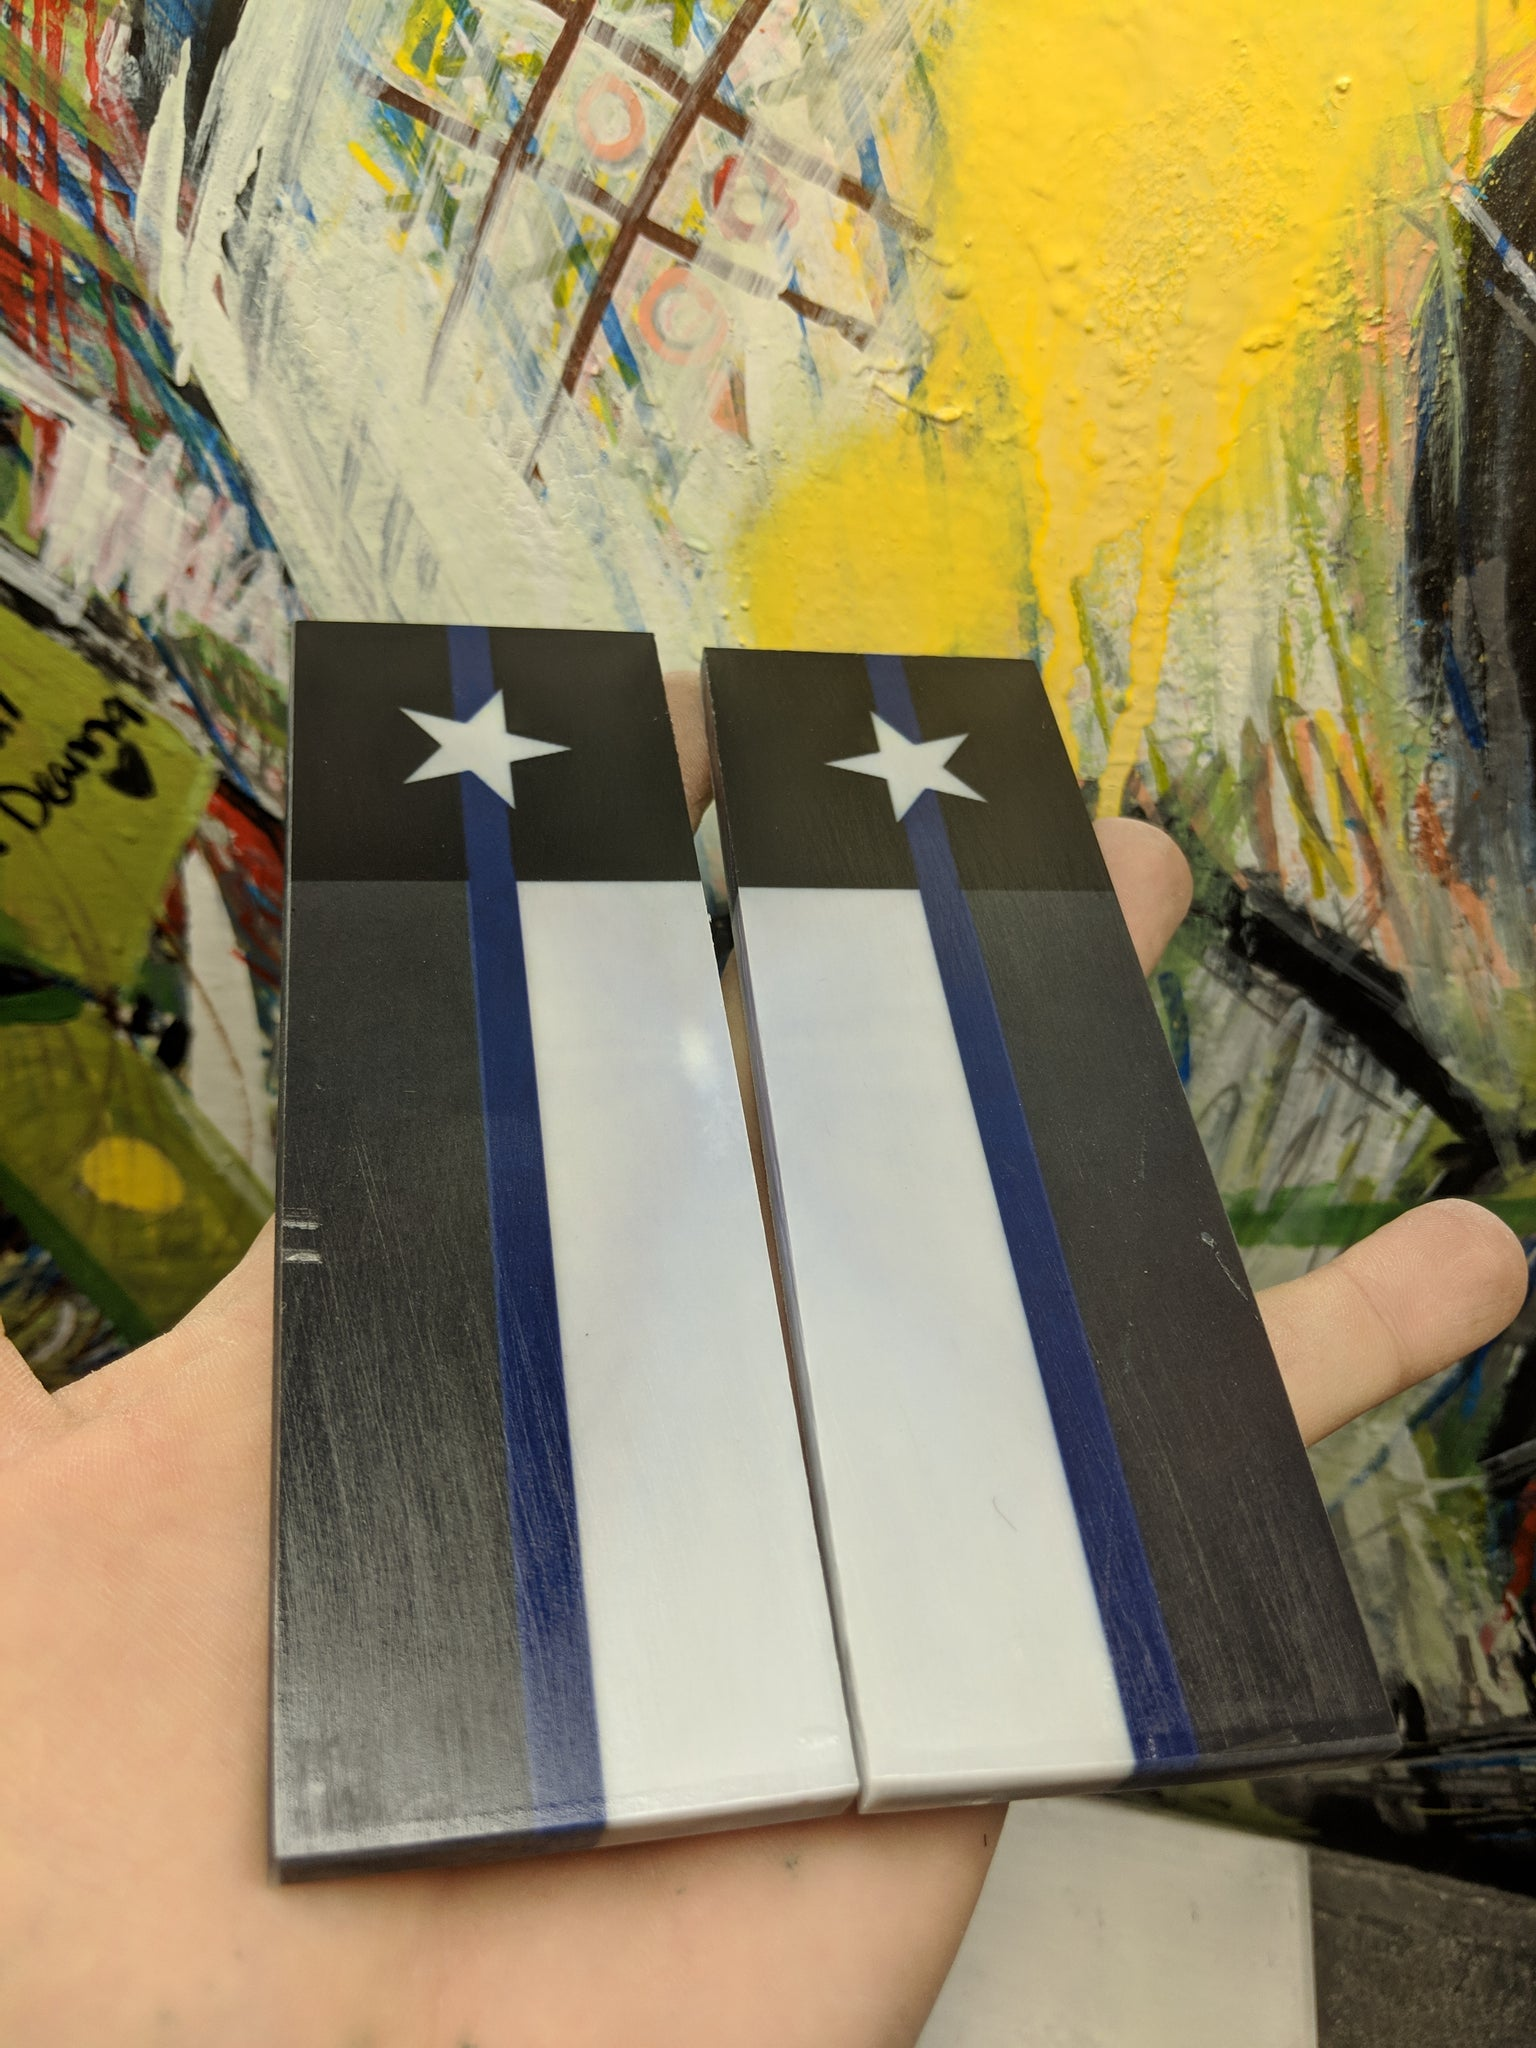 "Texas Thin Blue line,  6 x 1 3/4 x 1/4"" - Scale Set"